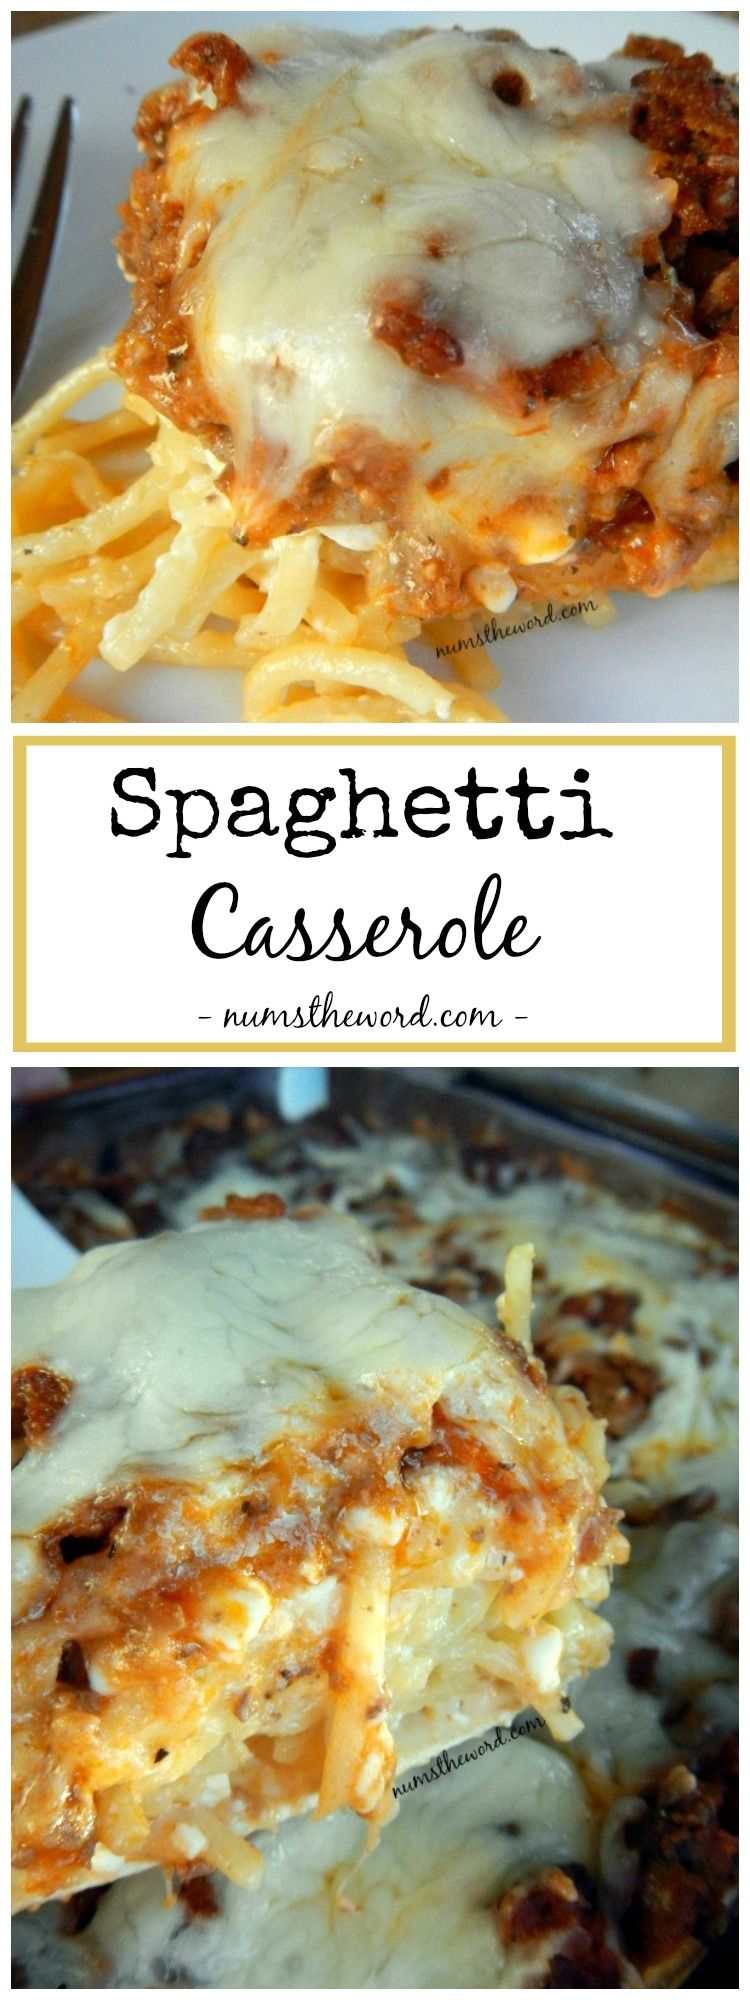 Trid This Spaghetti Casserole Is An Easy Weeknight Dish That Also Make A Great Freezer Meal Simple Kid Friendly And Delicious